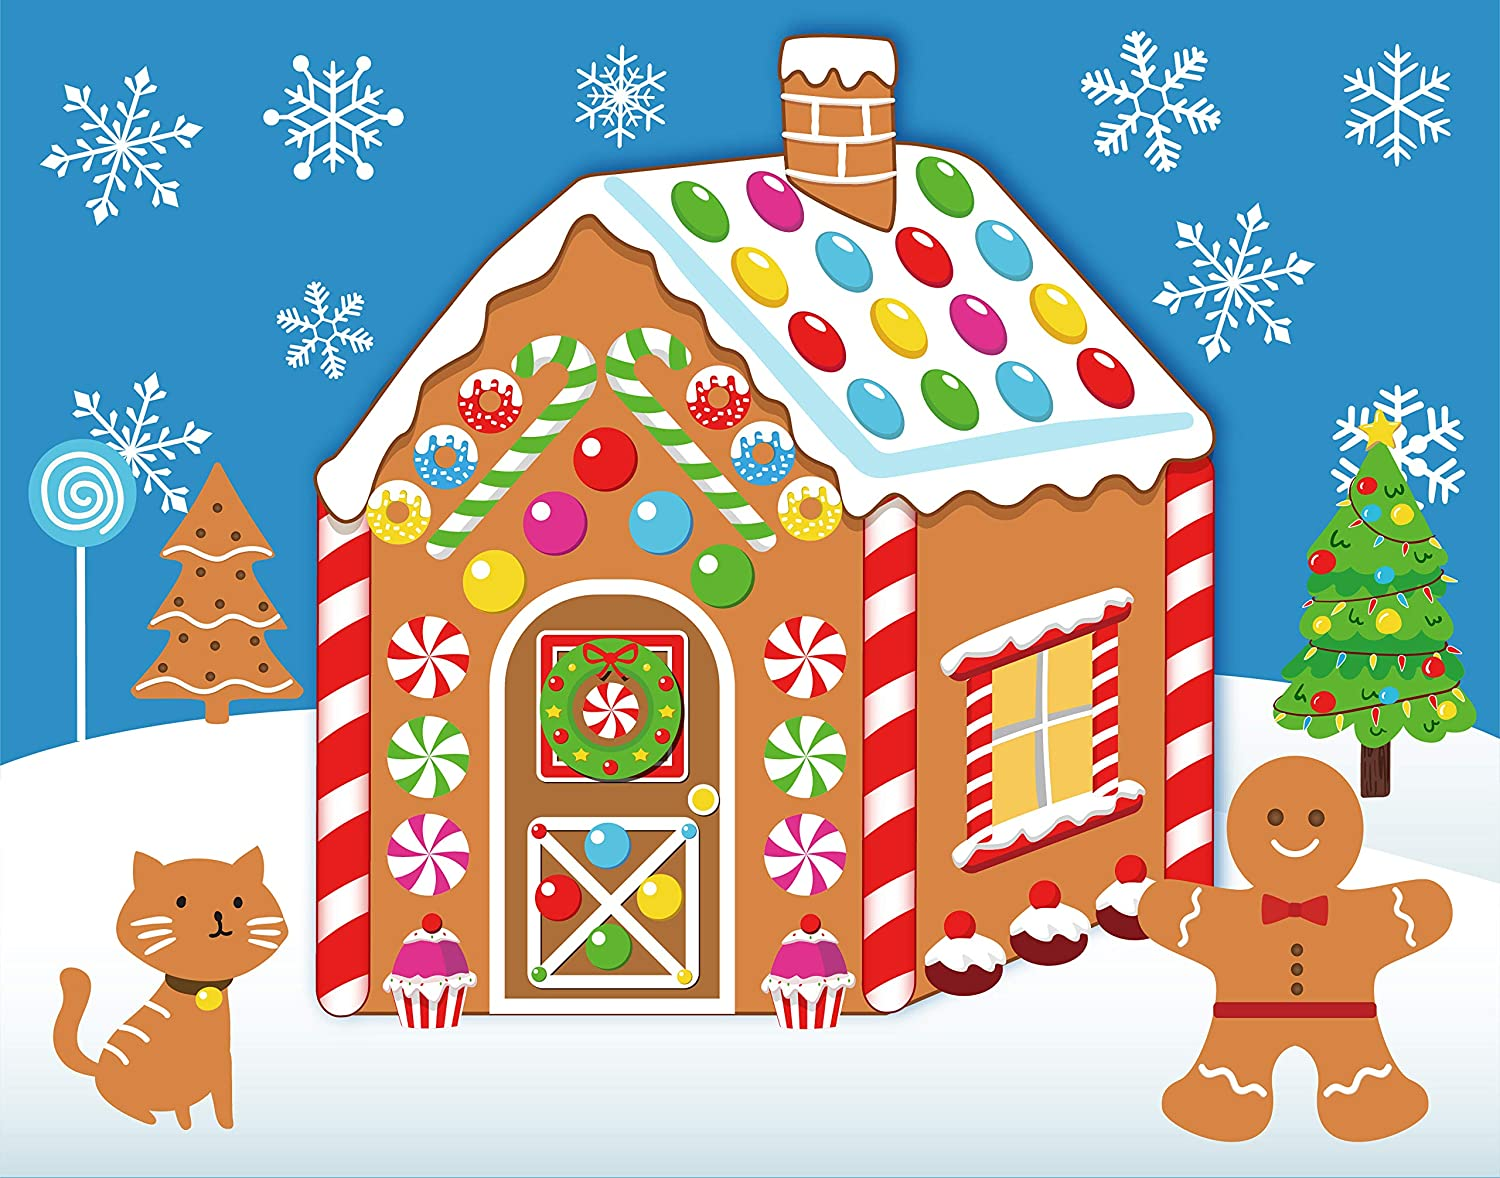 Make A Gingerbread House Stickers Christmas Party Game Craft Activity Favor Supplies 13 Finished Products